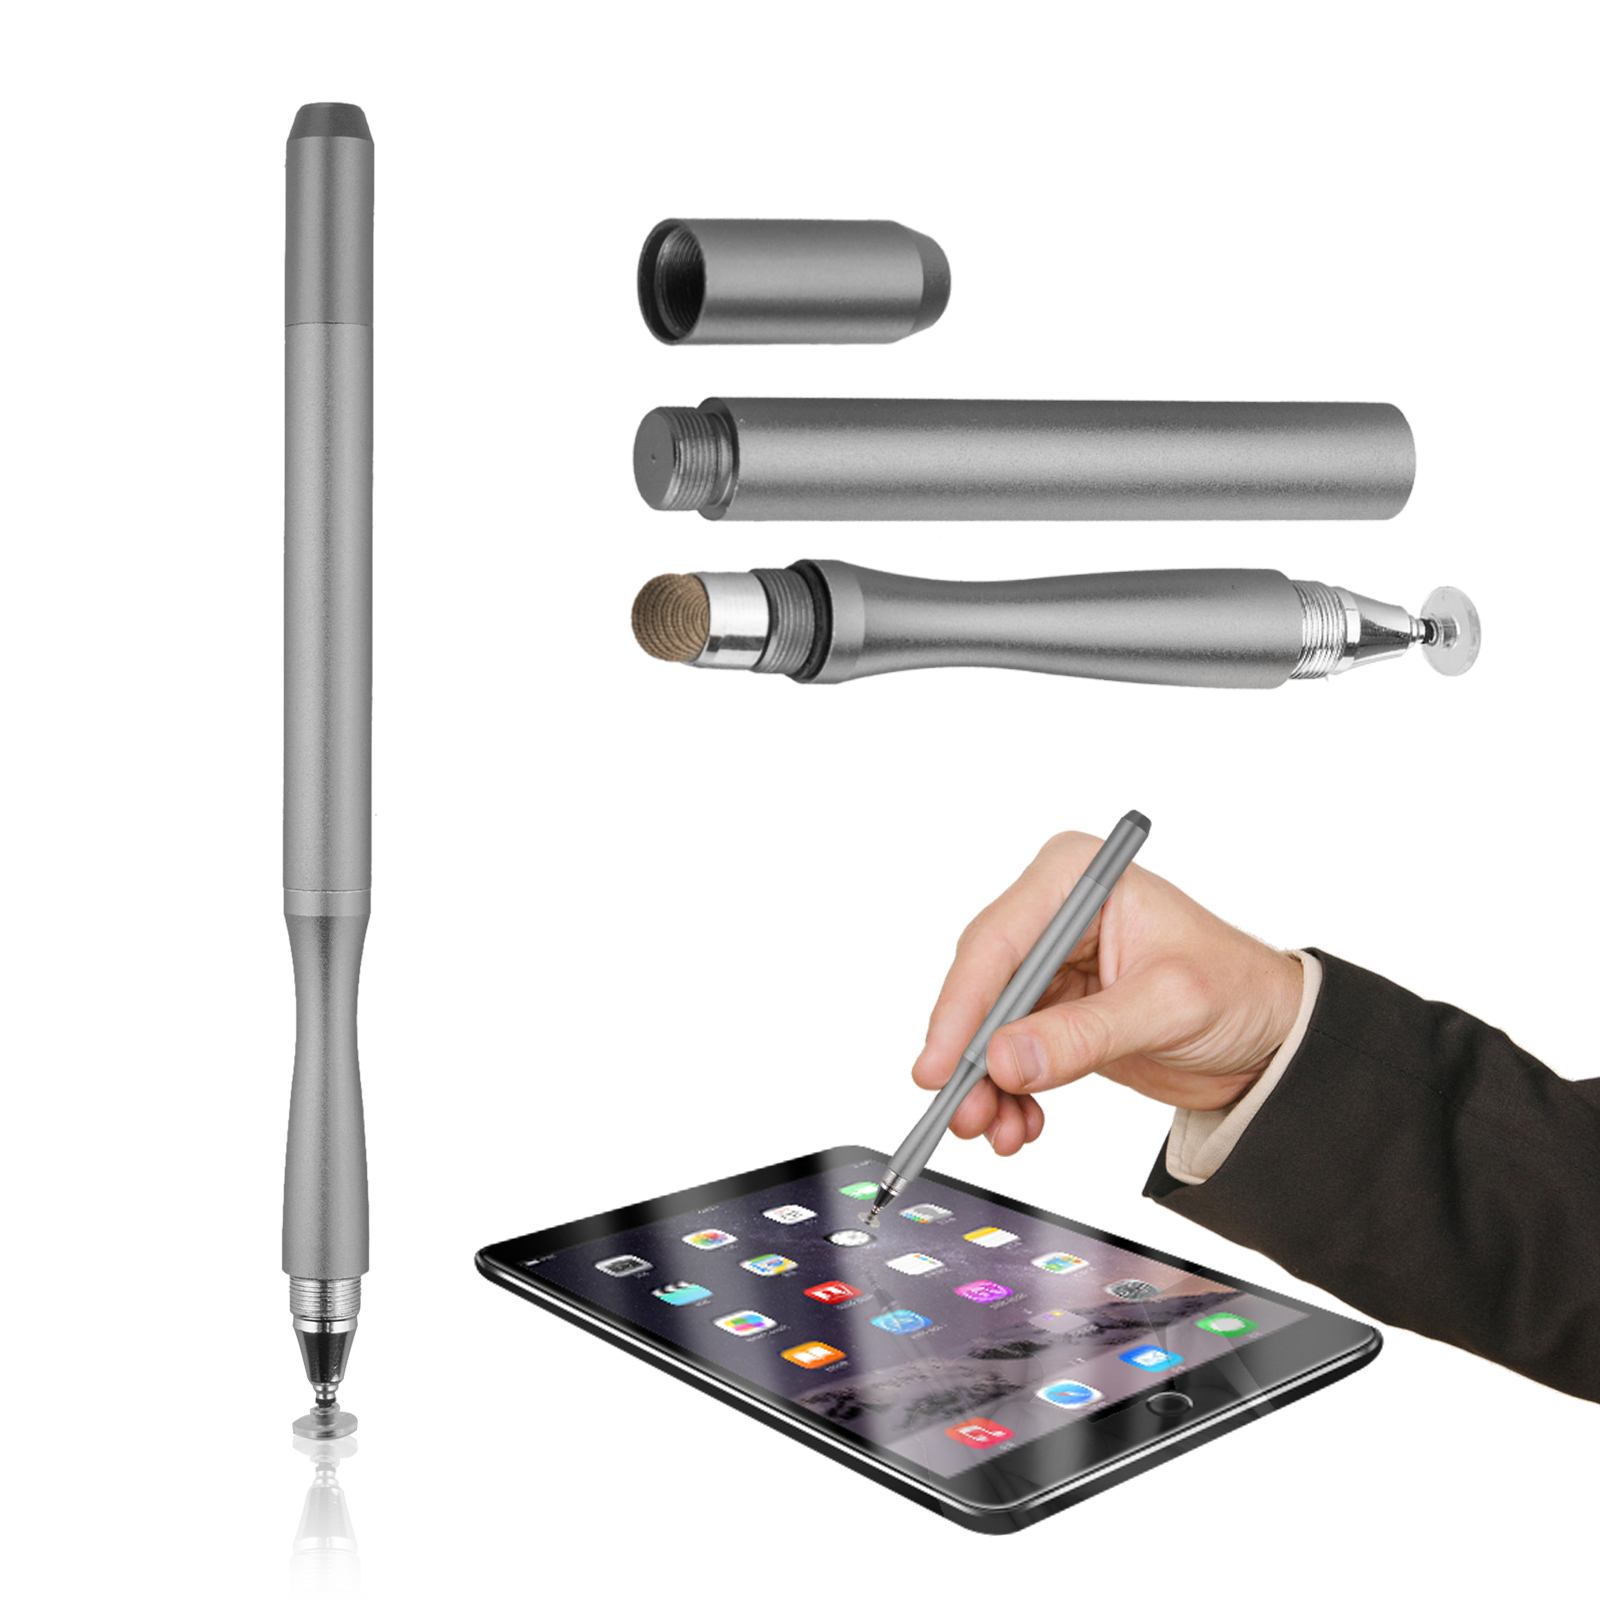 TSV Capacitive Pen Touch Screen Stylus Pencil for Tablet iPad Cell Phone Samsung PC